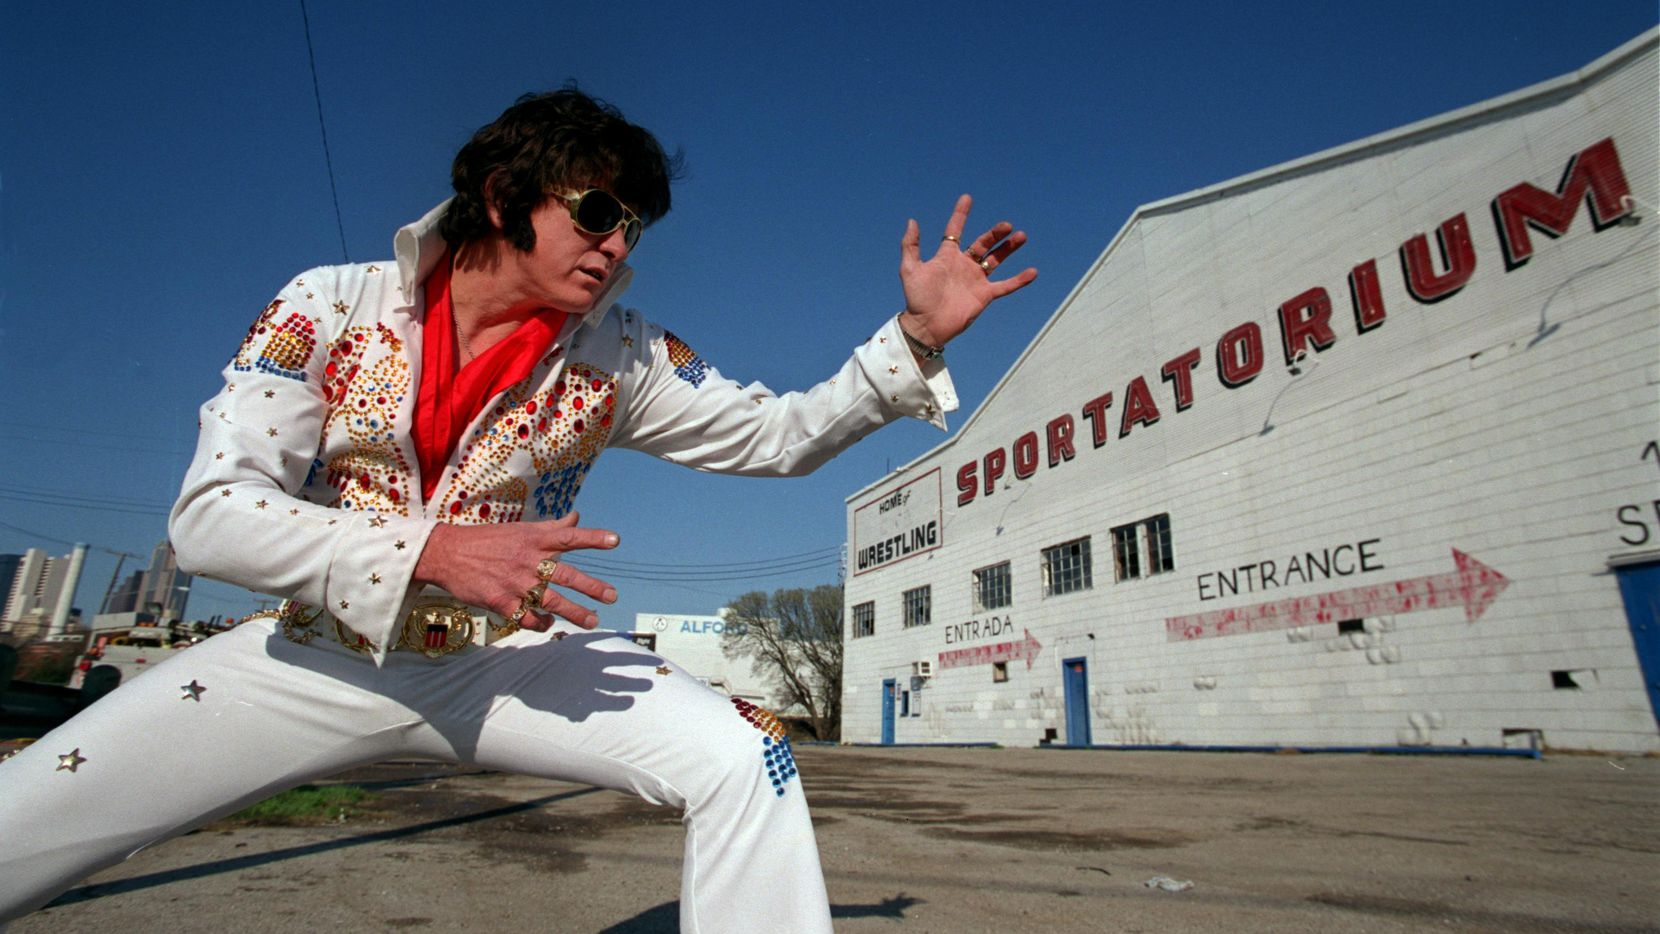 An Elvis impersonator posed outside the Sportatorium, where Elvis Presley played several times in the mid-'50s before the building was demolished.